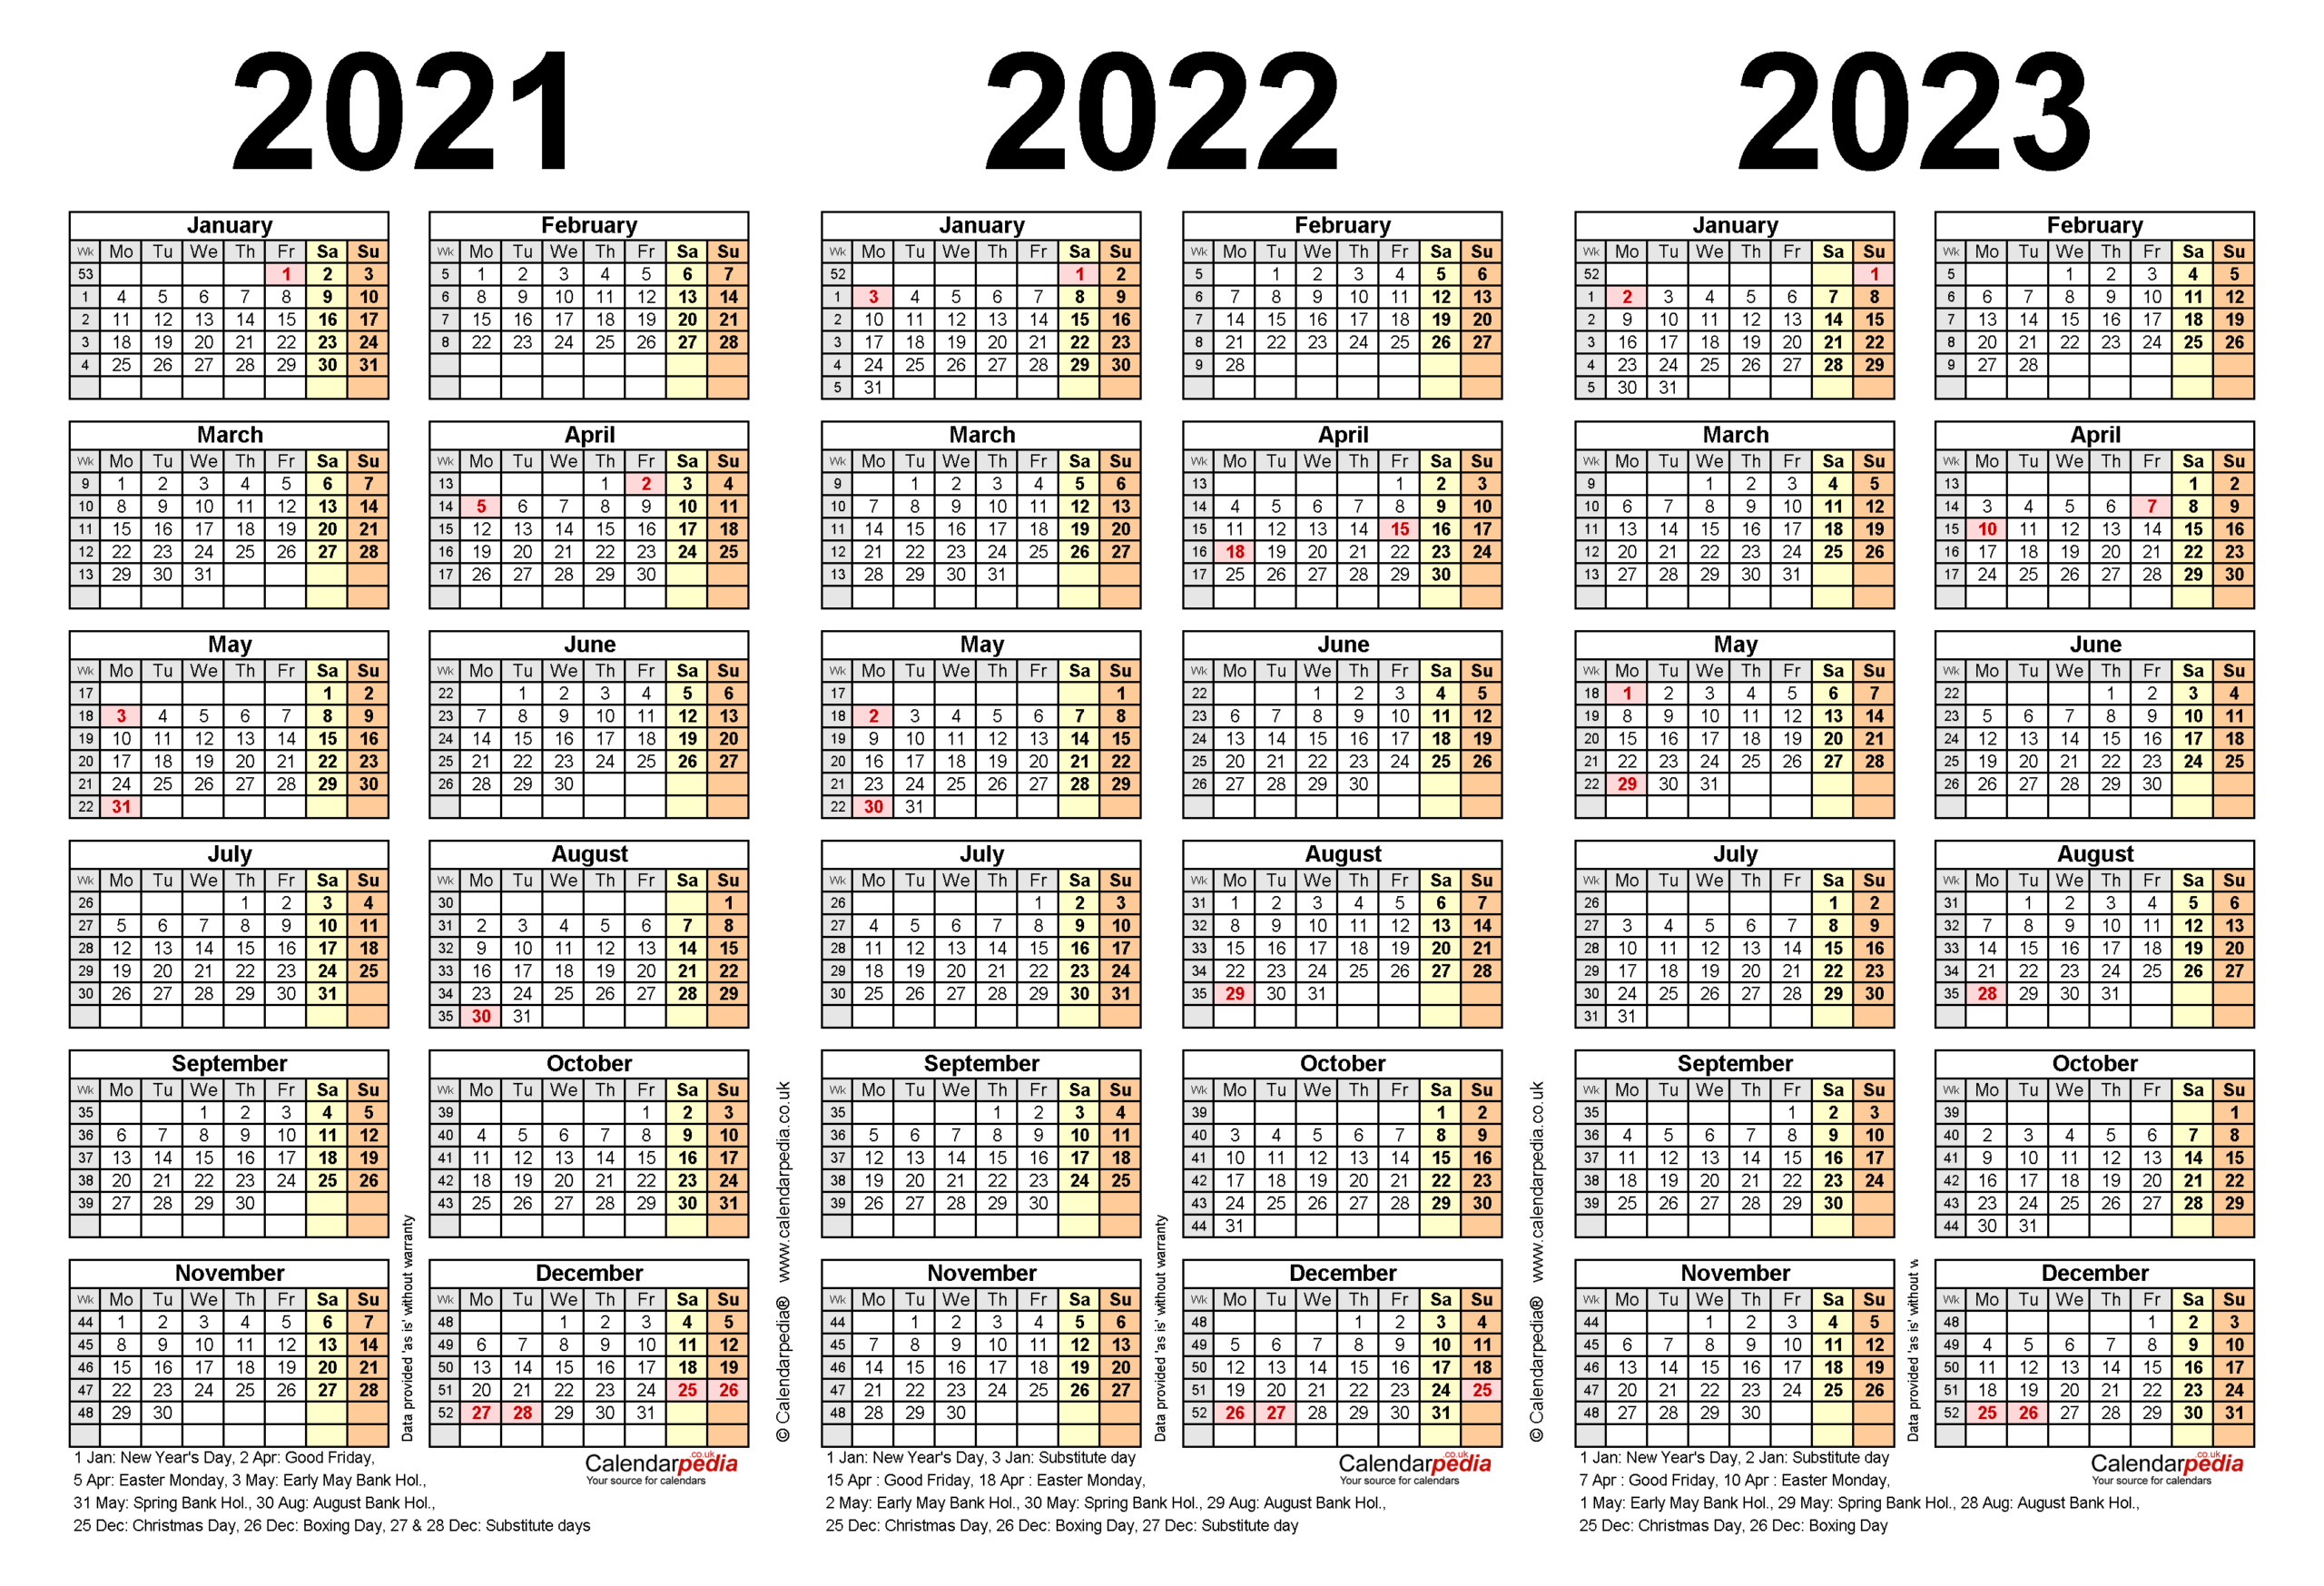 Three Year Calendars For 2021, 2022 & 2023 (Uk) For Word pertaining to Three Year Printable Calendar 2021 To 2023